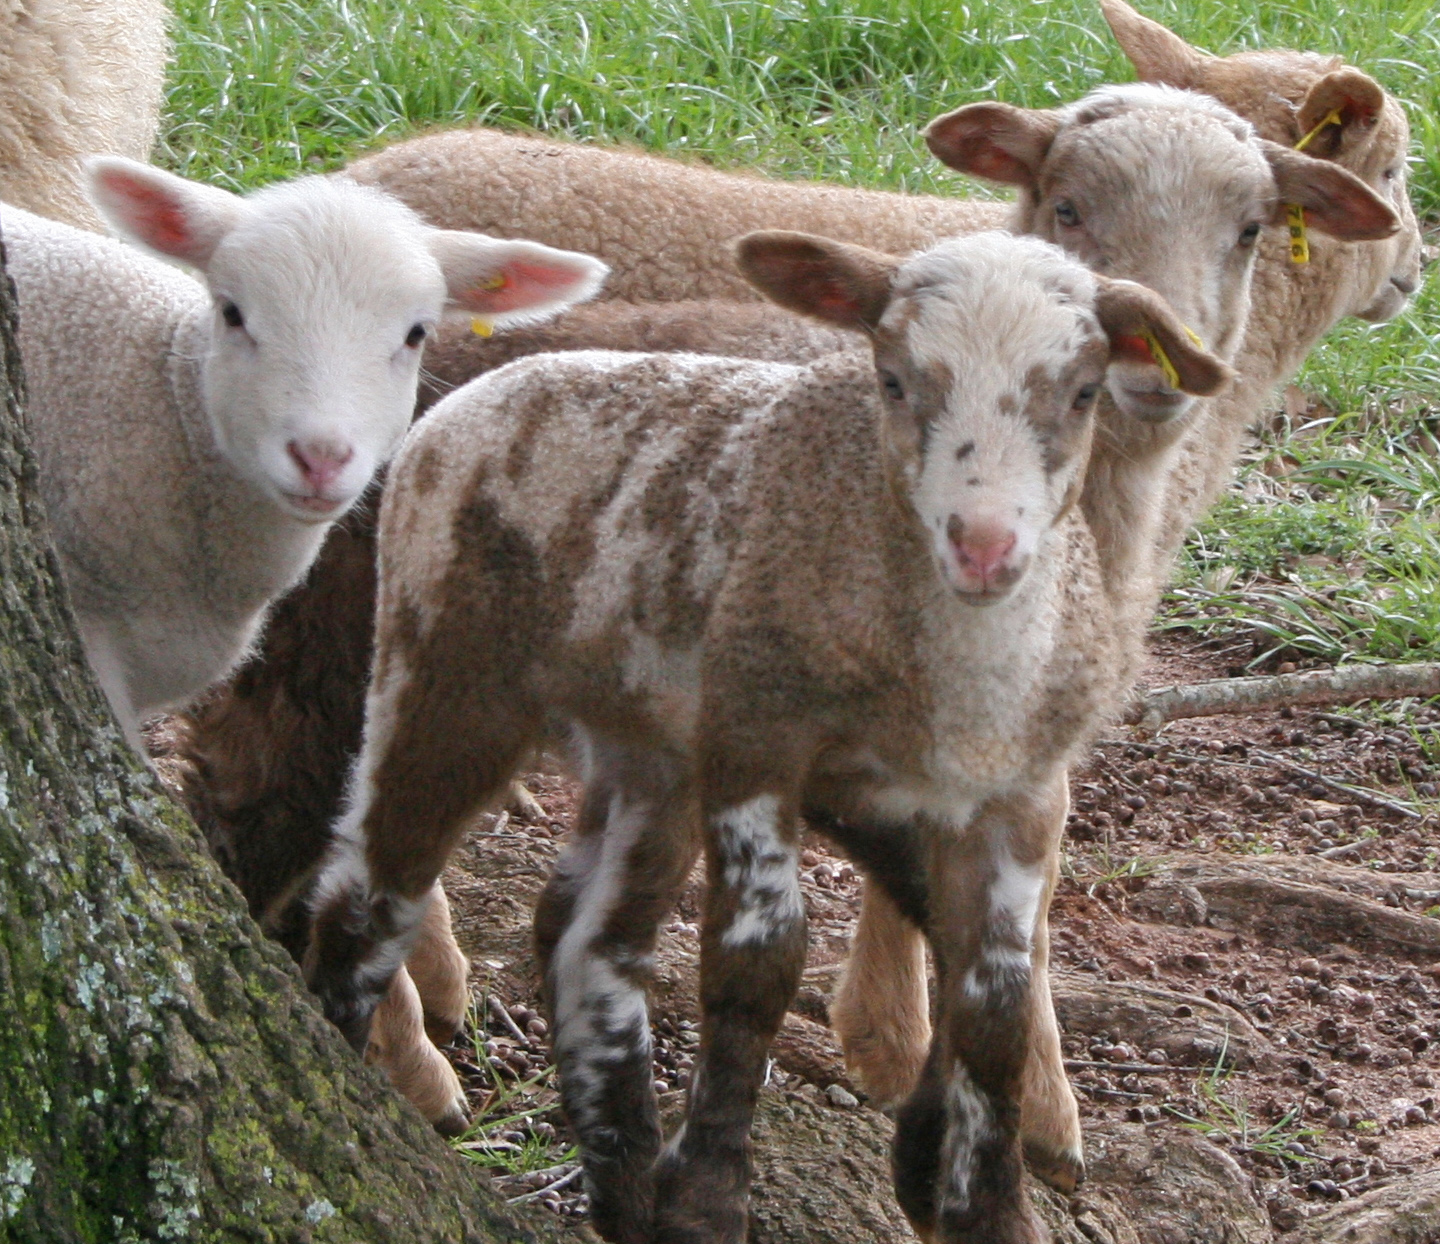 Madison County Sheep Farmer Jan Southers's Gulf Coast lambs play in her field.